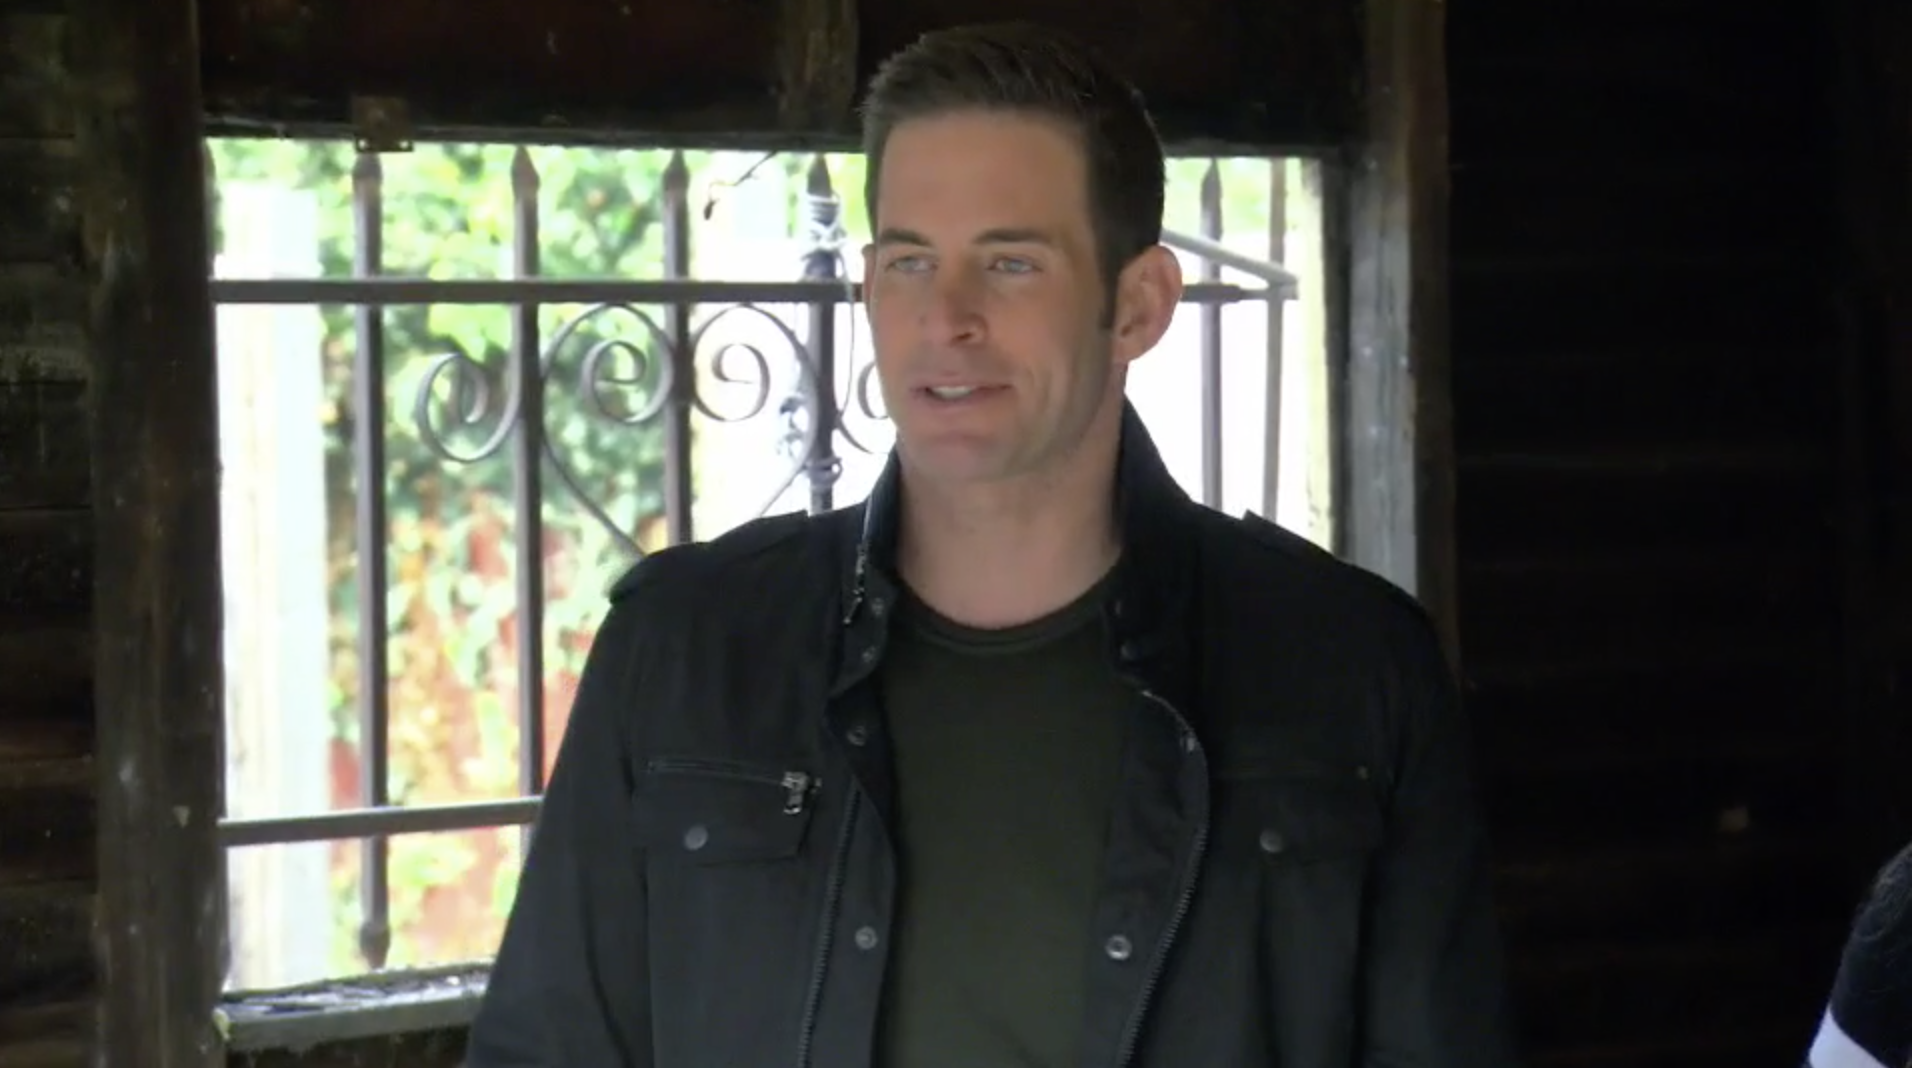 Tarek El Moussa Opens Up About the Pressure of Filming His Solo Show 'Flipping 101'